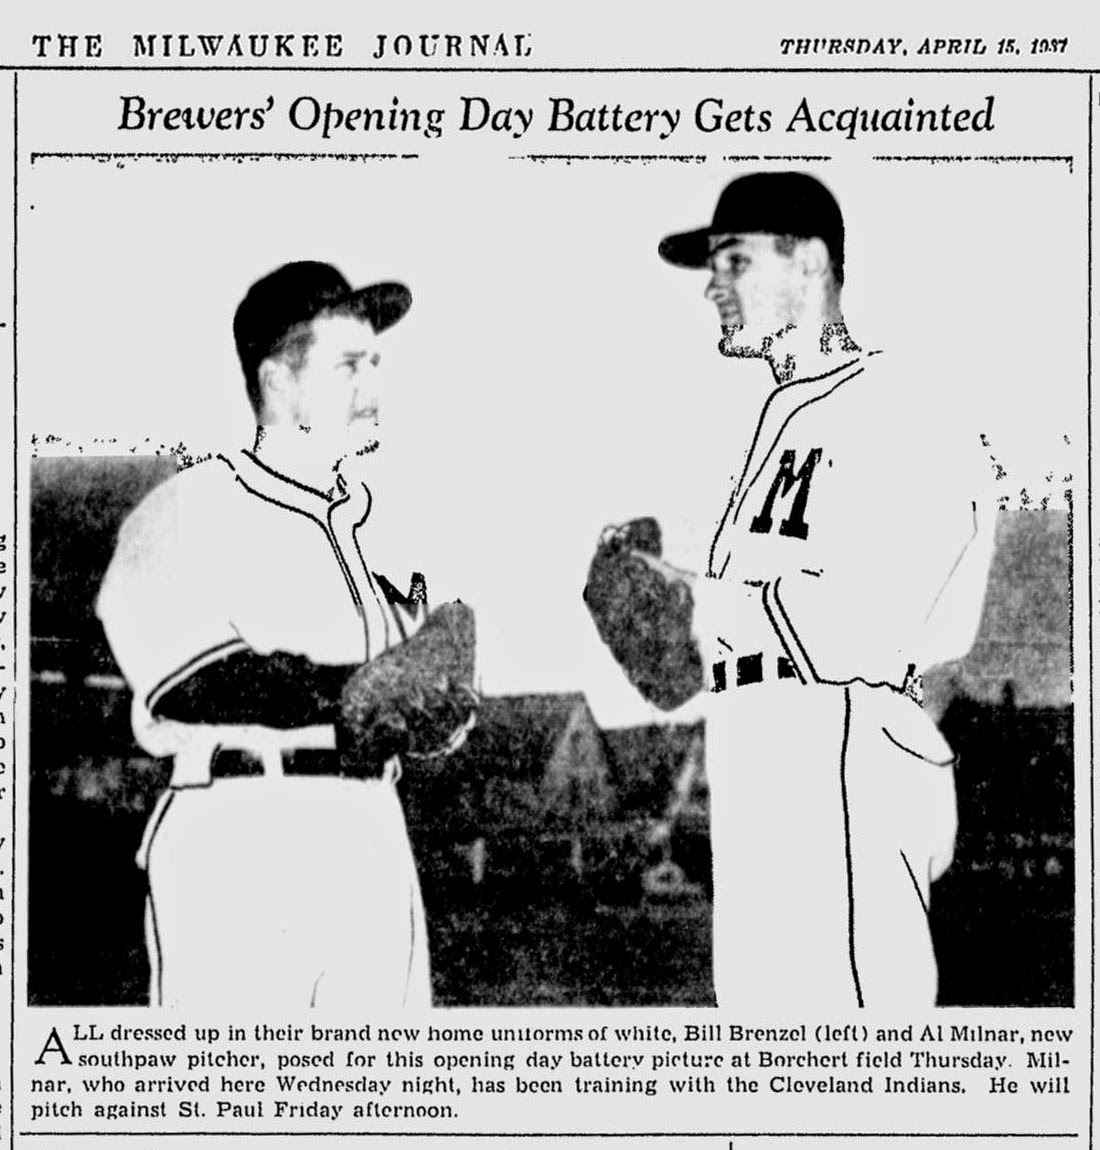 95acac65a8a If the Brewers were to wear 1937 uniforms